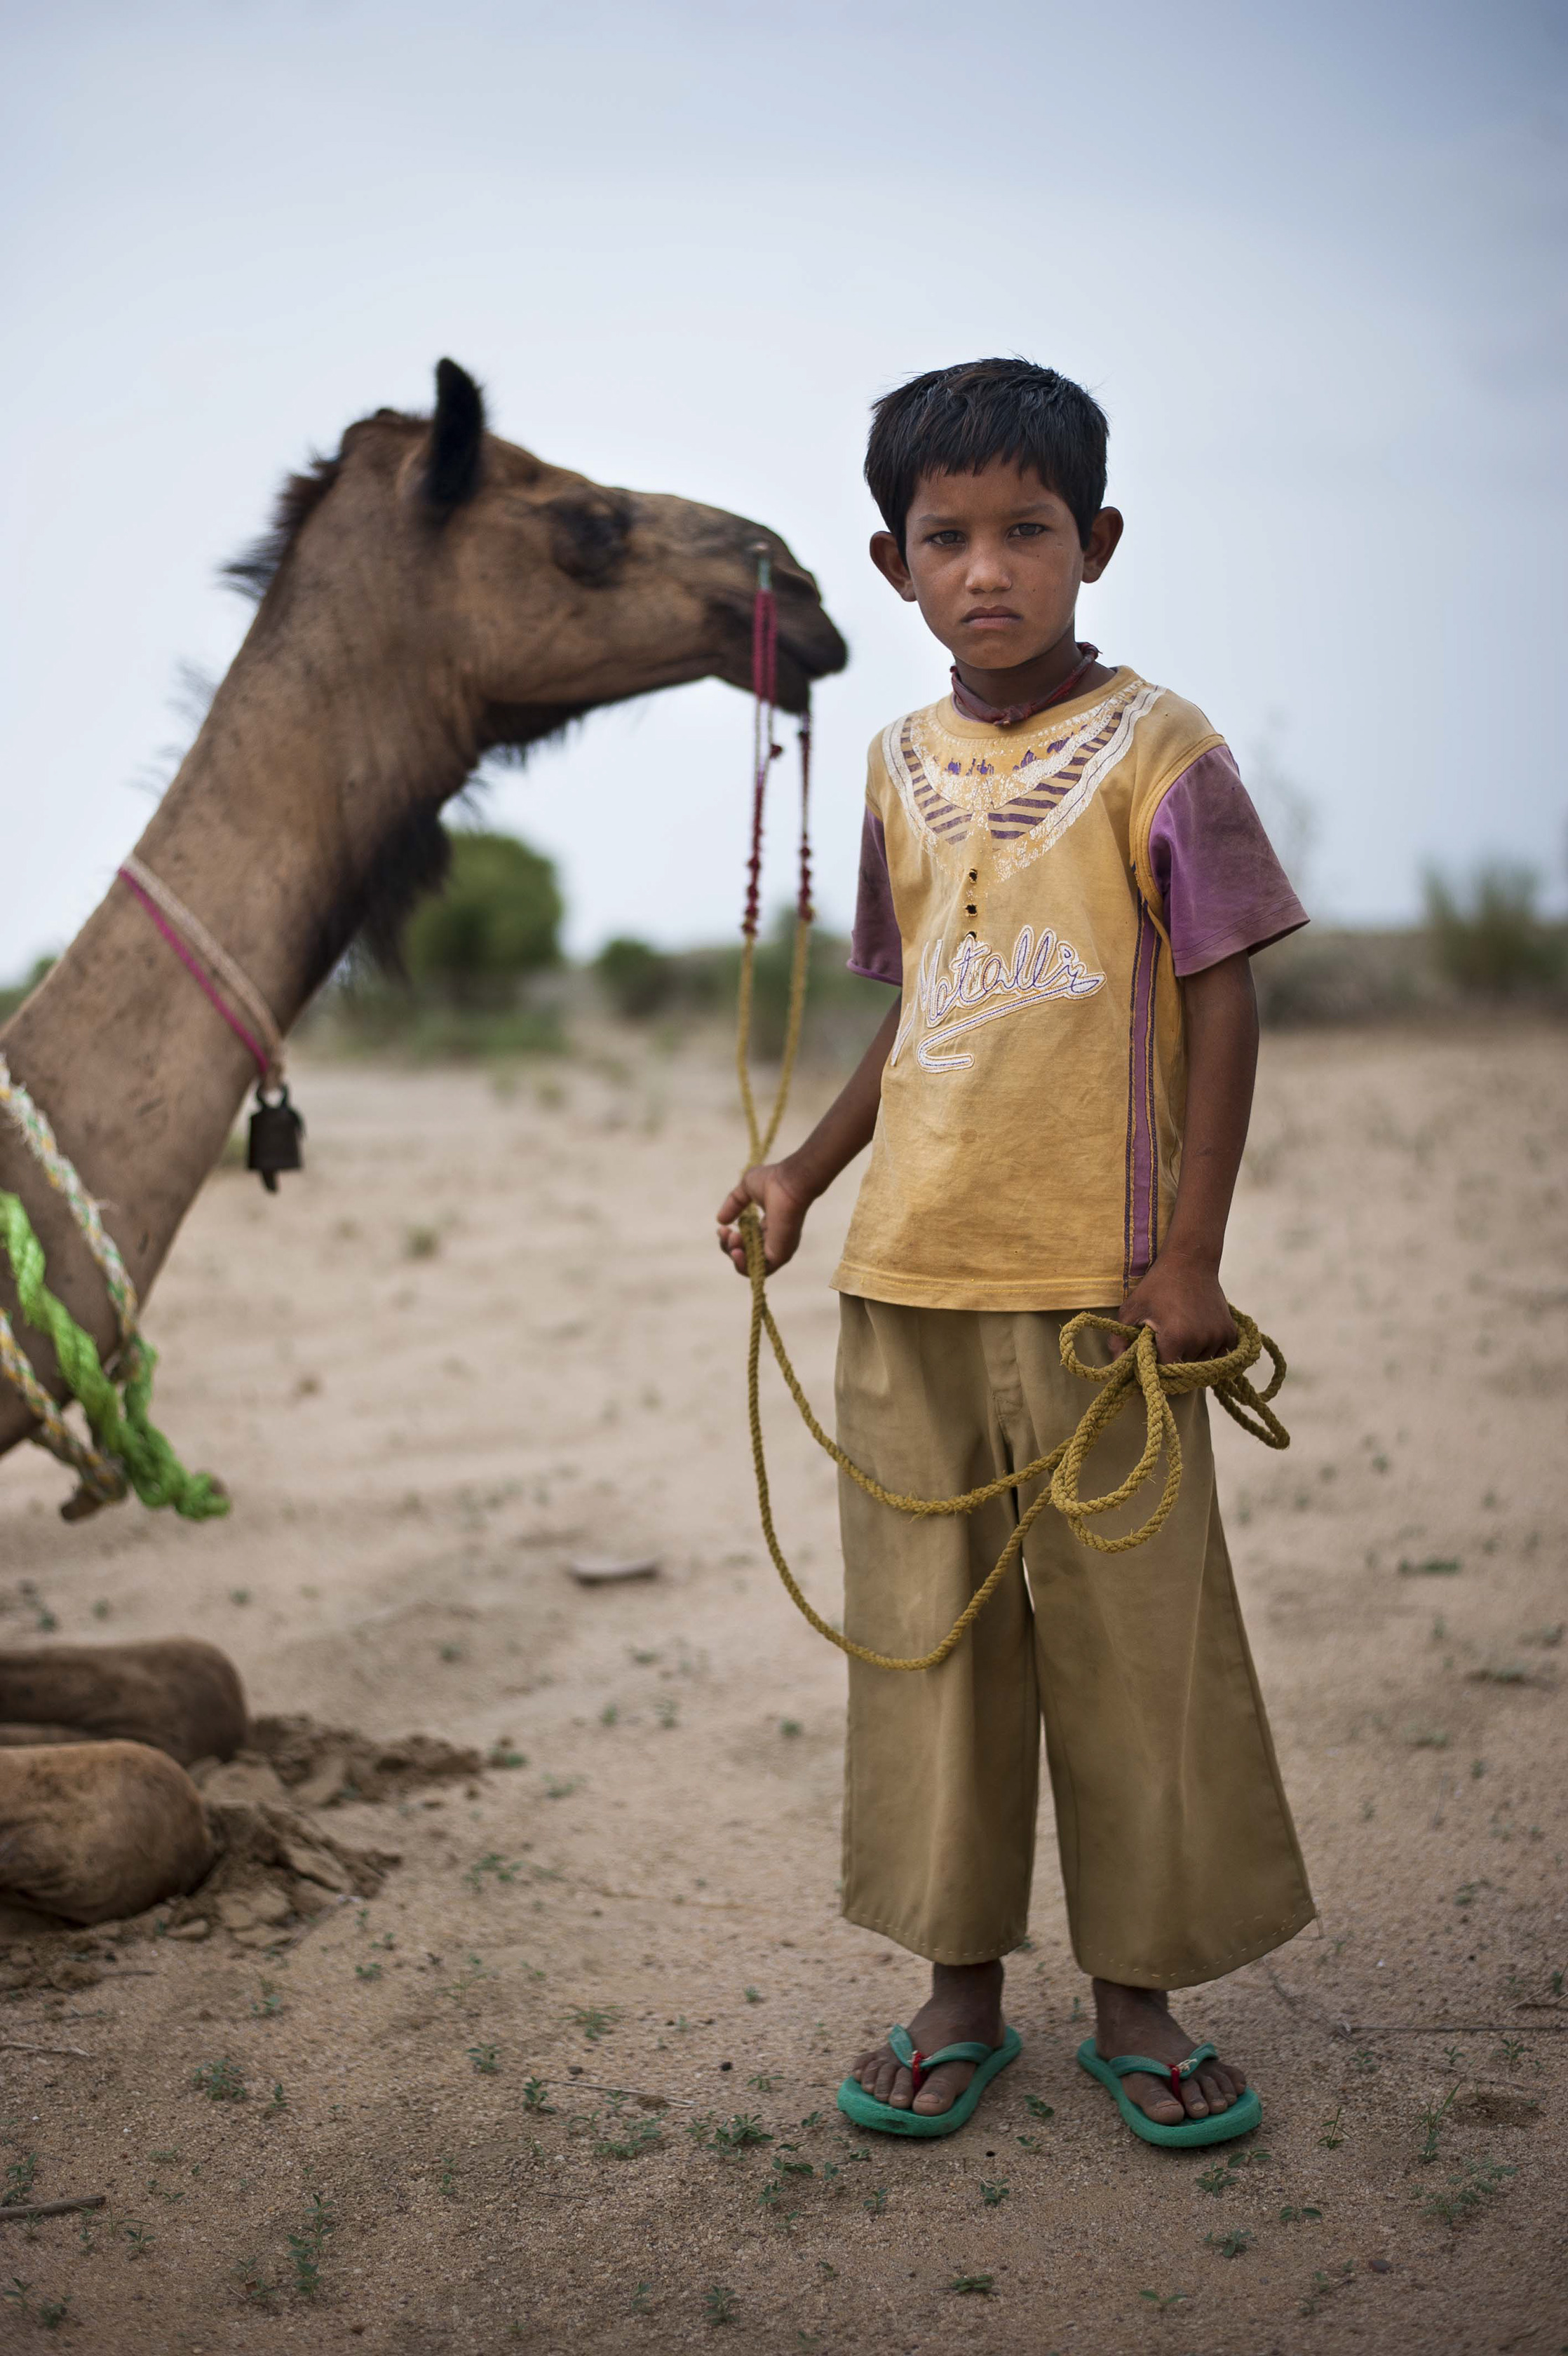 Bhuja, 10-year-old Camel safari guide, in the Thar Desert in Rajasthan, India.